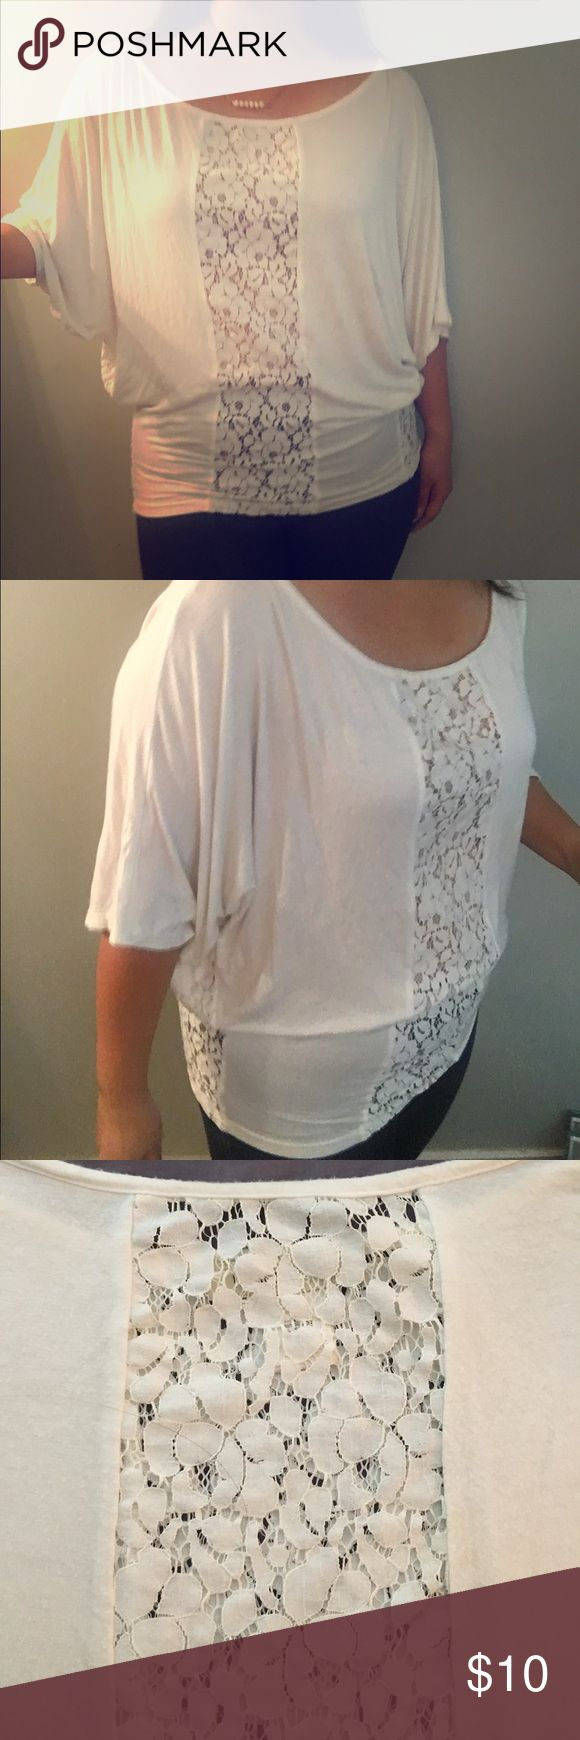 Arden B cream lace dolman top Arden B dolman top with cream lace accents along back, front, and sides. Super soft and comfy material. Wear over cami or nude bra. Some flaws (stains) shown in photos. Beautiful fit, covers all problem areas! Arden B Tops Blouses